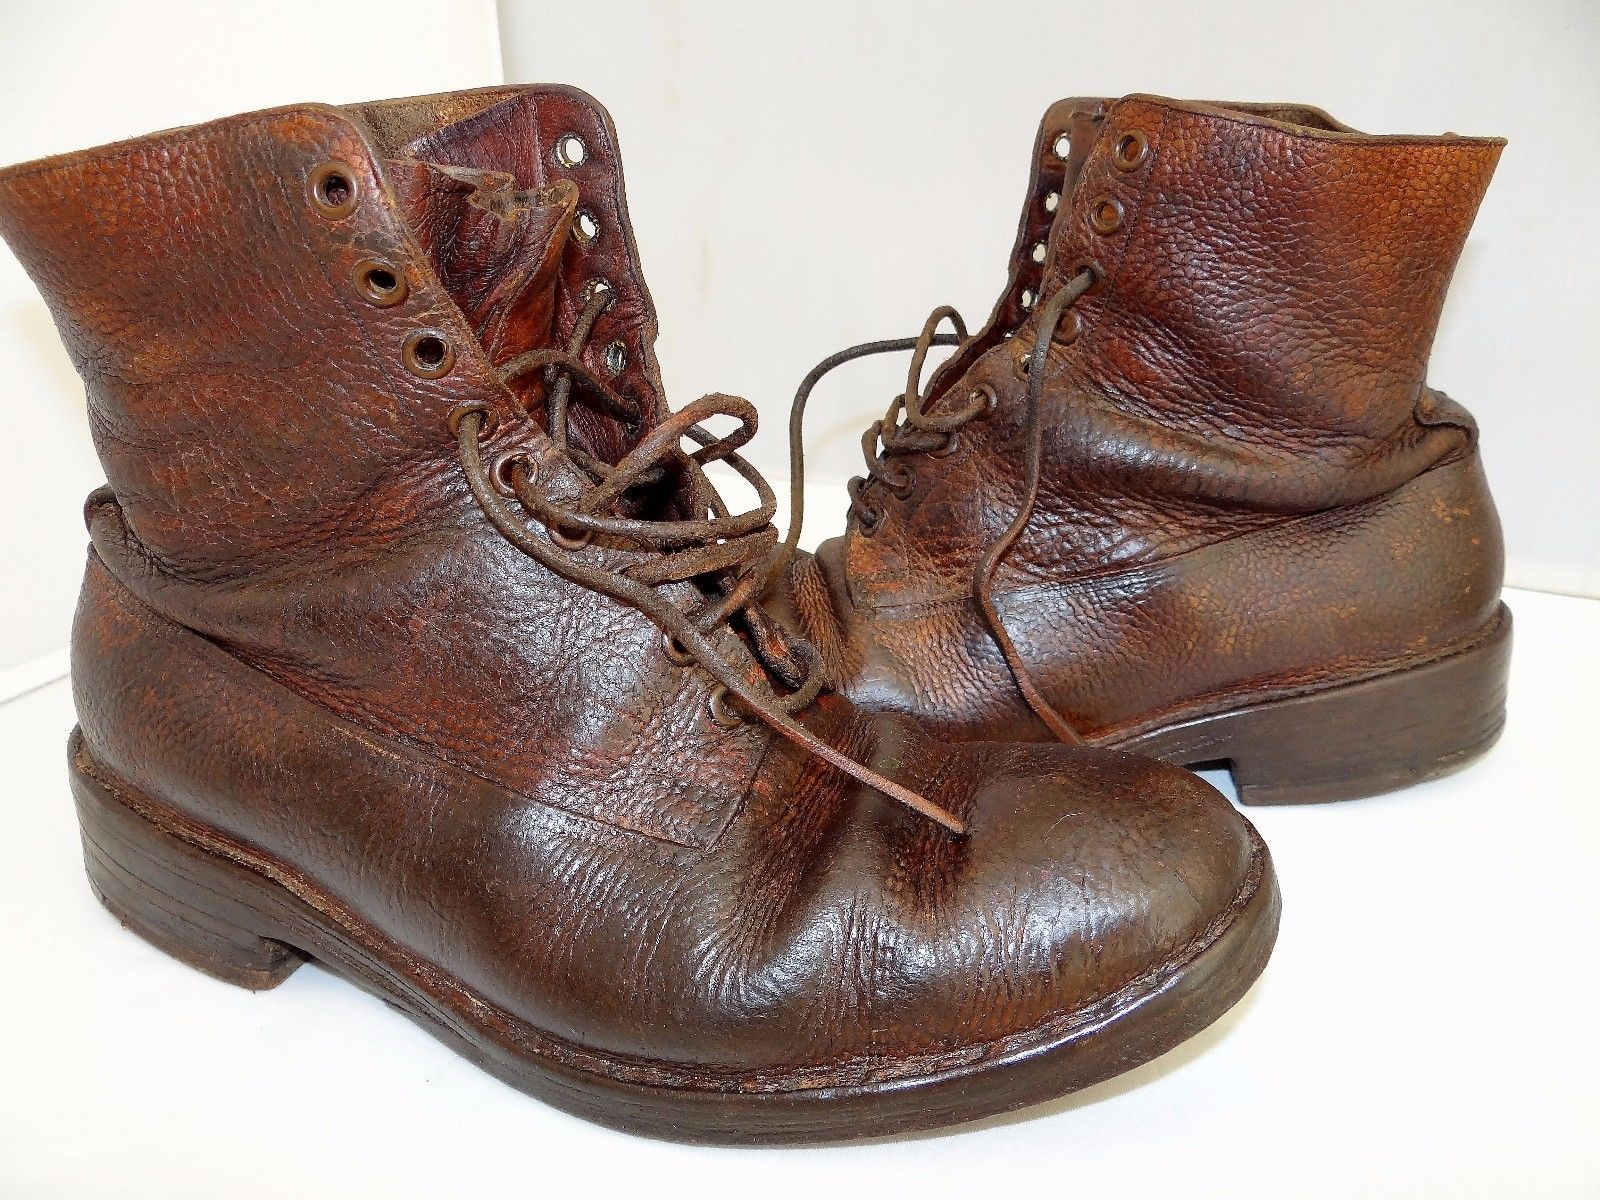 These are original WWII boots from the late 1930's. All